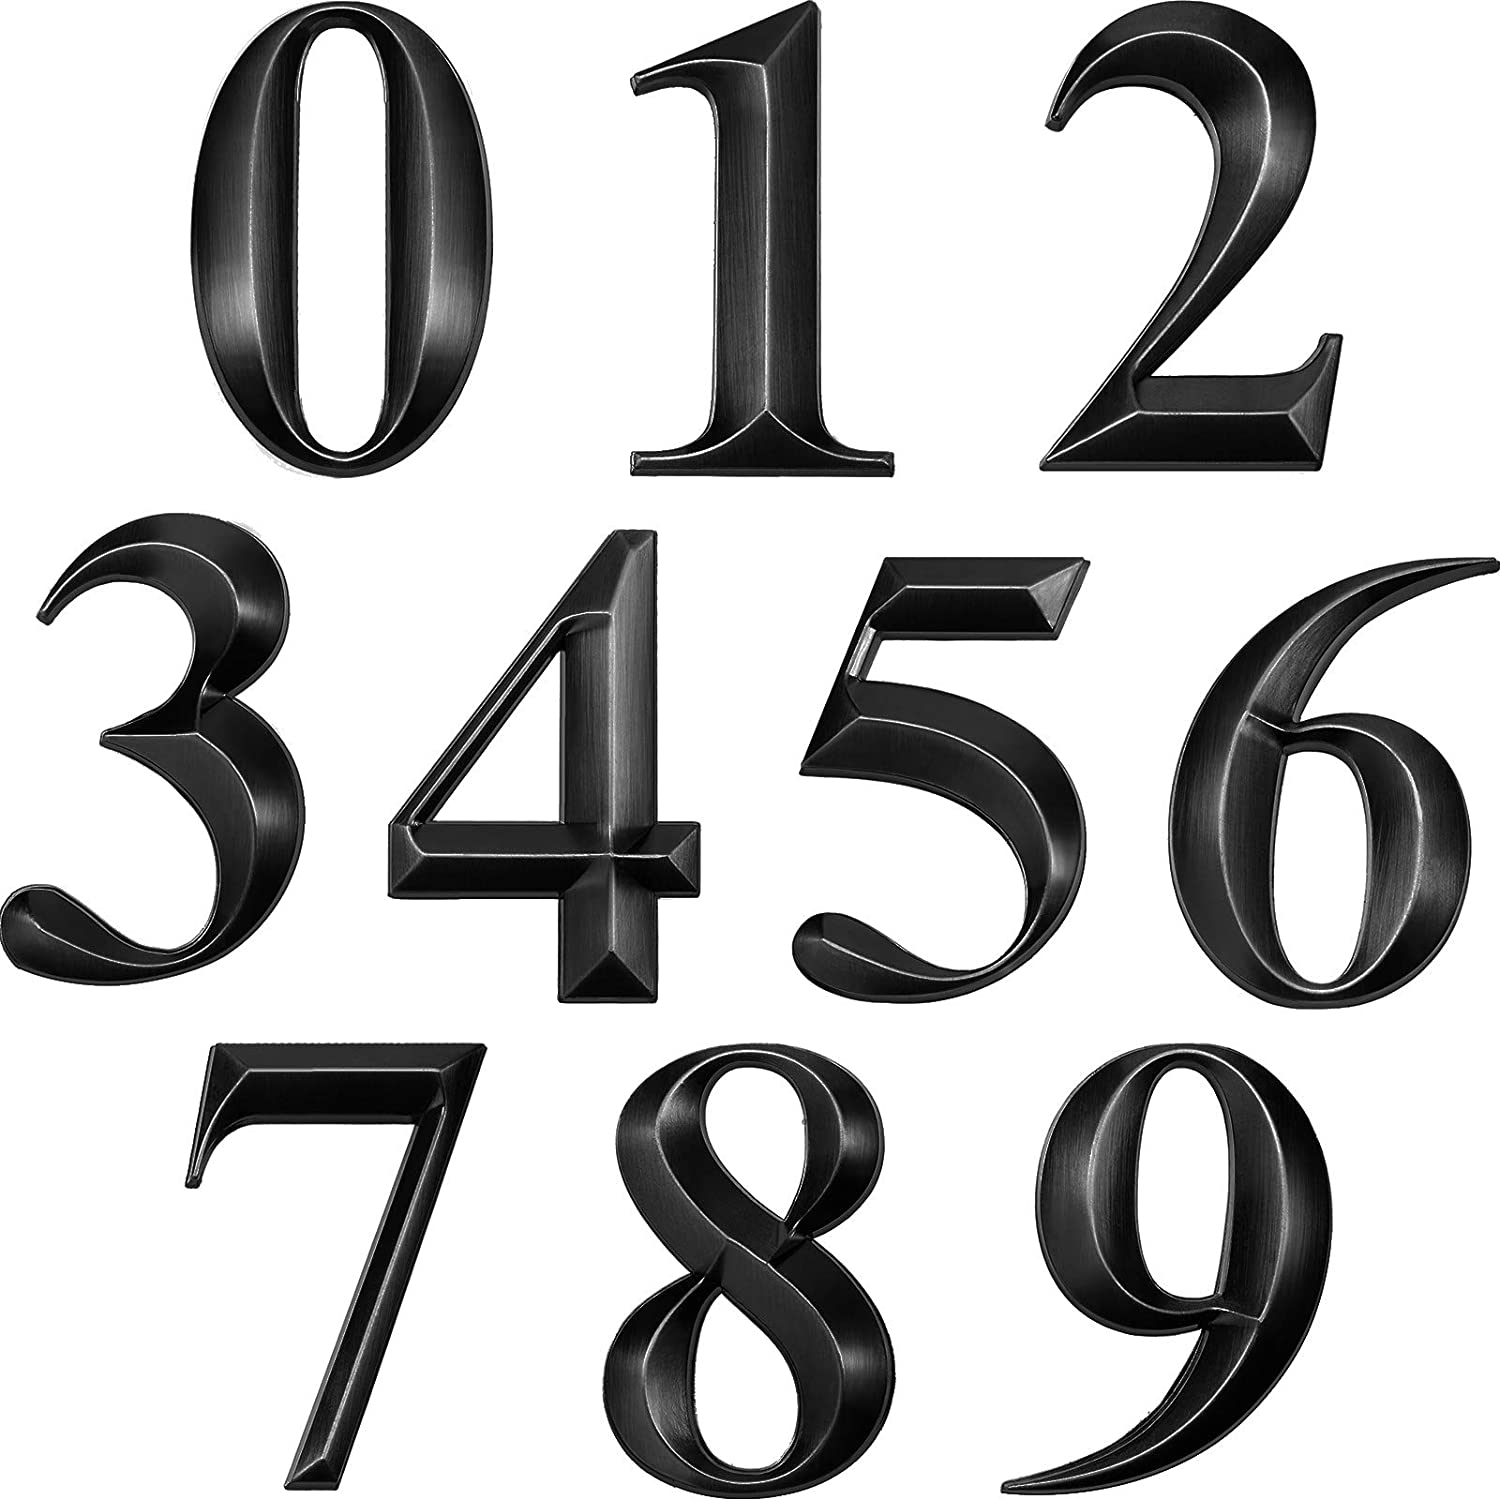 Mailbox Numbers Self-Adhesive Door House Numbers Address Numbers 3D Door Address Stickers Street Address Plaques Numbers Mailbox Signs for House, Apartment, Office 0 to 9 (10, Black)